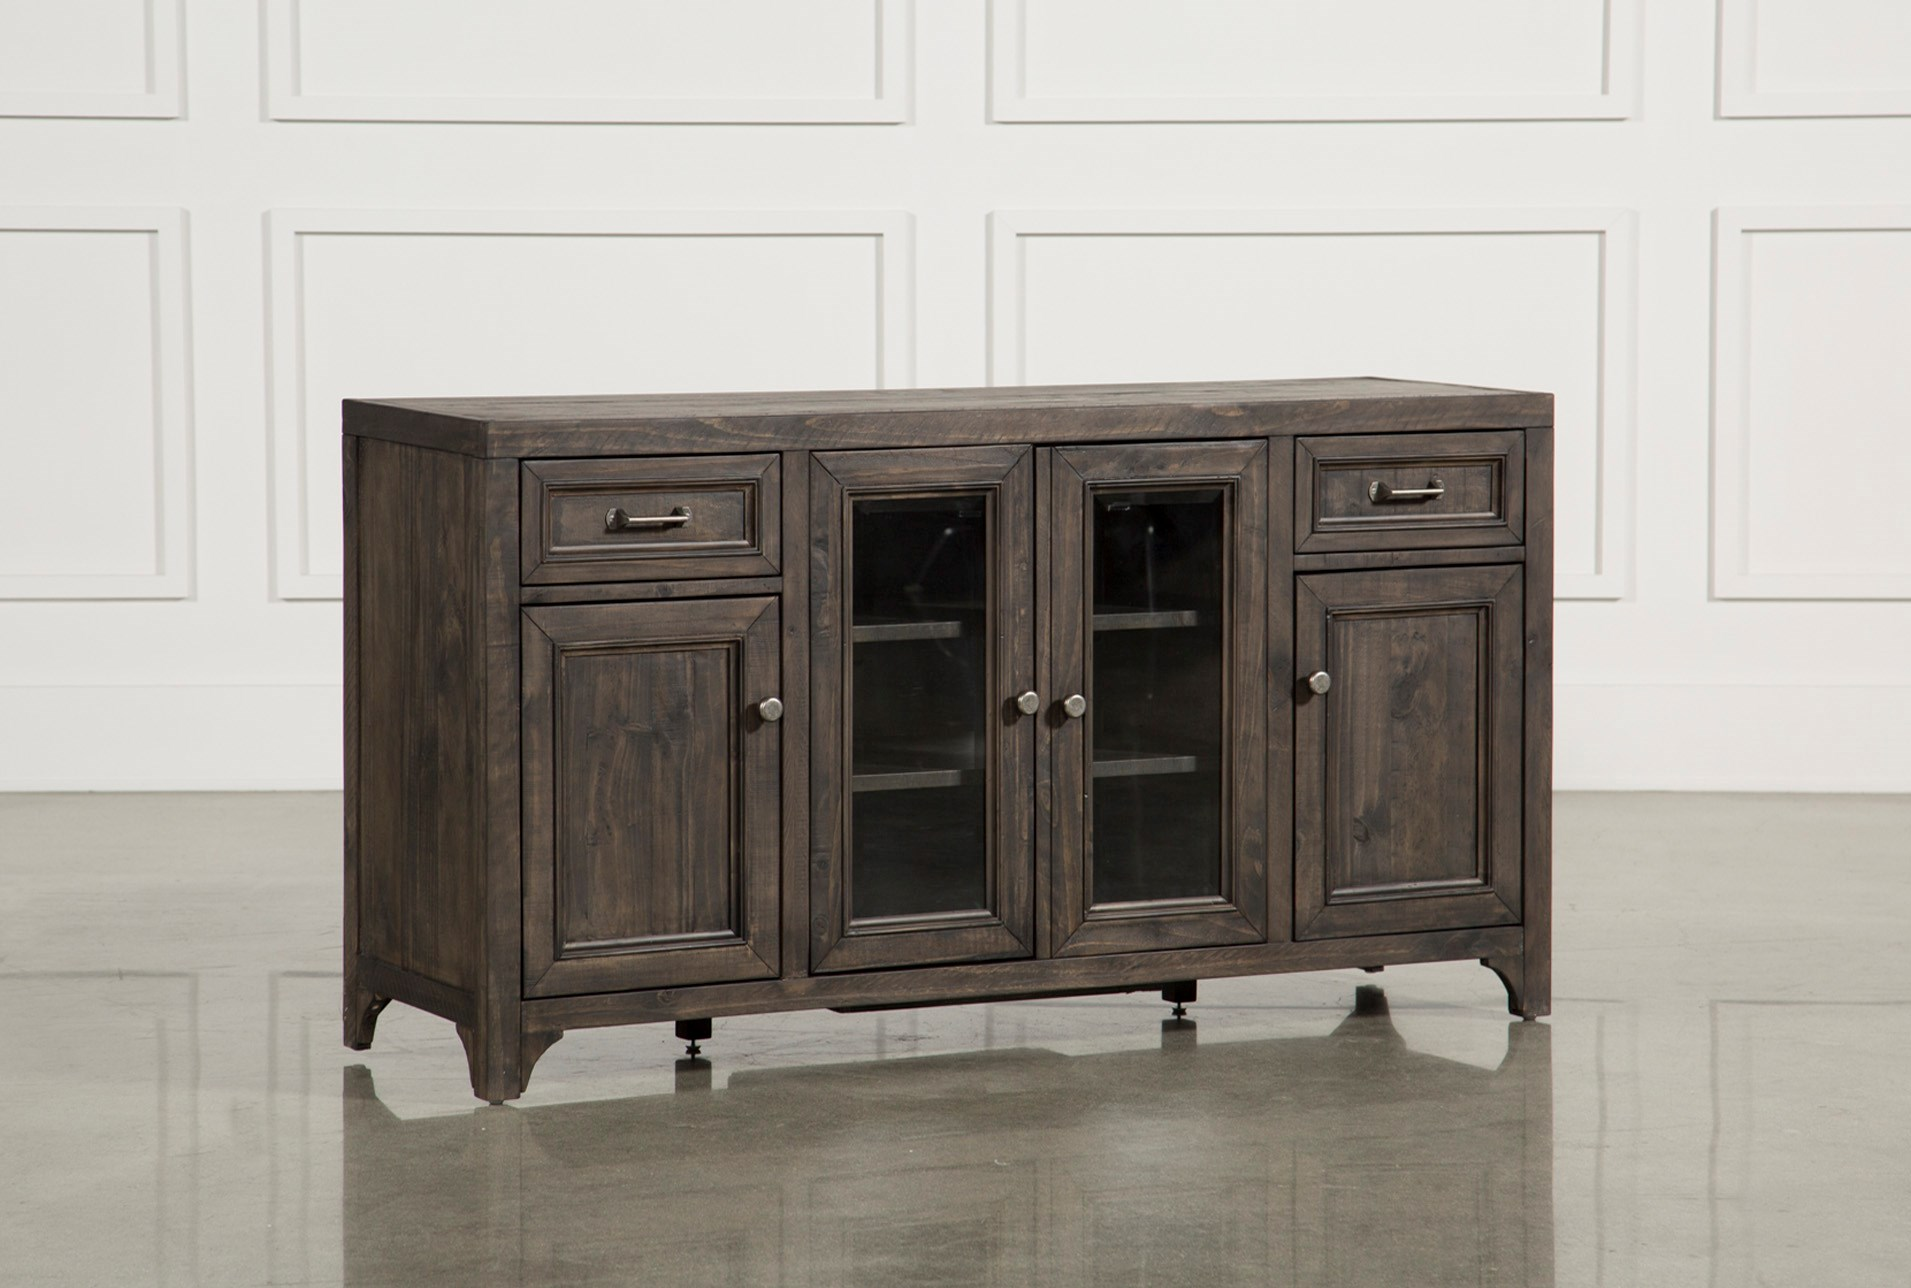 60 inch tv stand Valencia 60 Inch TV Stand   Living Spaces 60 inch tv stand